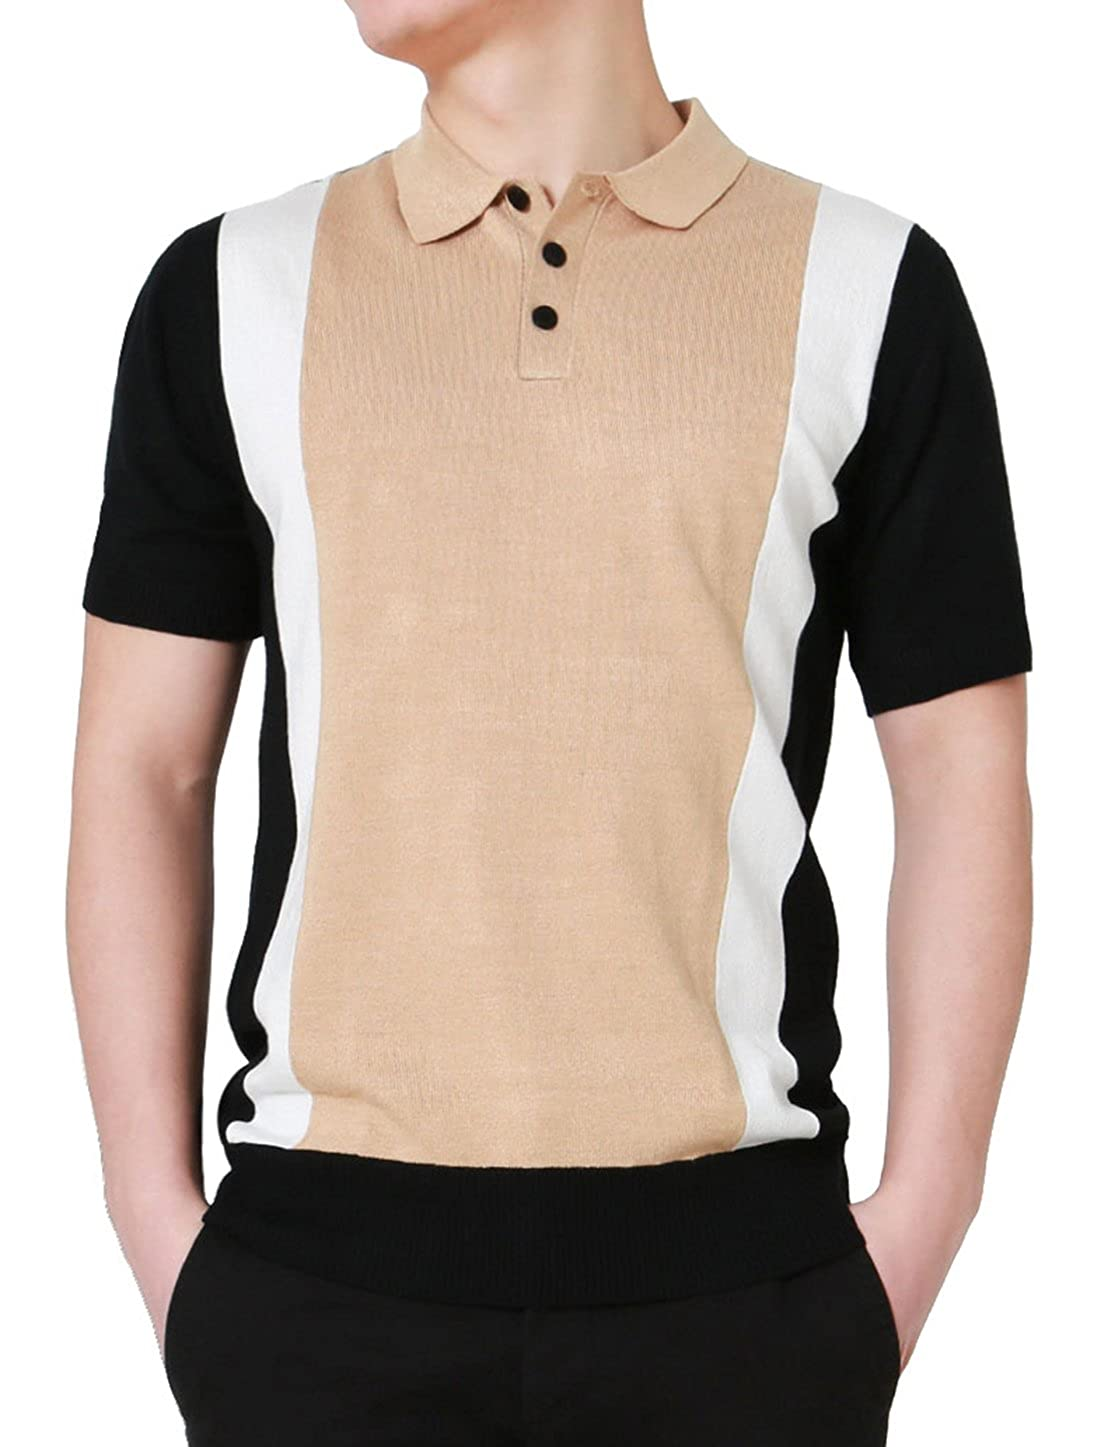 Vintage Shirts – Mens – Retro Shirts uxcell Men Color Block Paneled Knitted Cotton Short Sleeves Golf Polo Shirts $32.00 AT vintagedancer.com